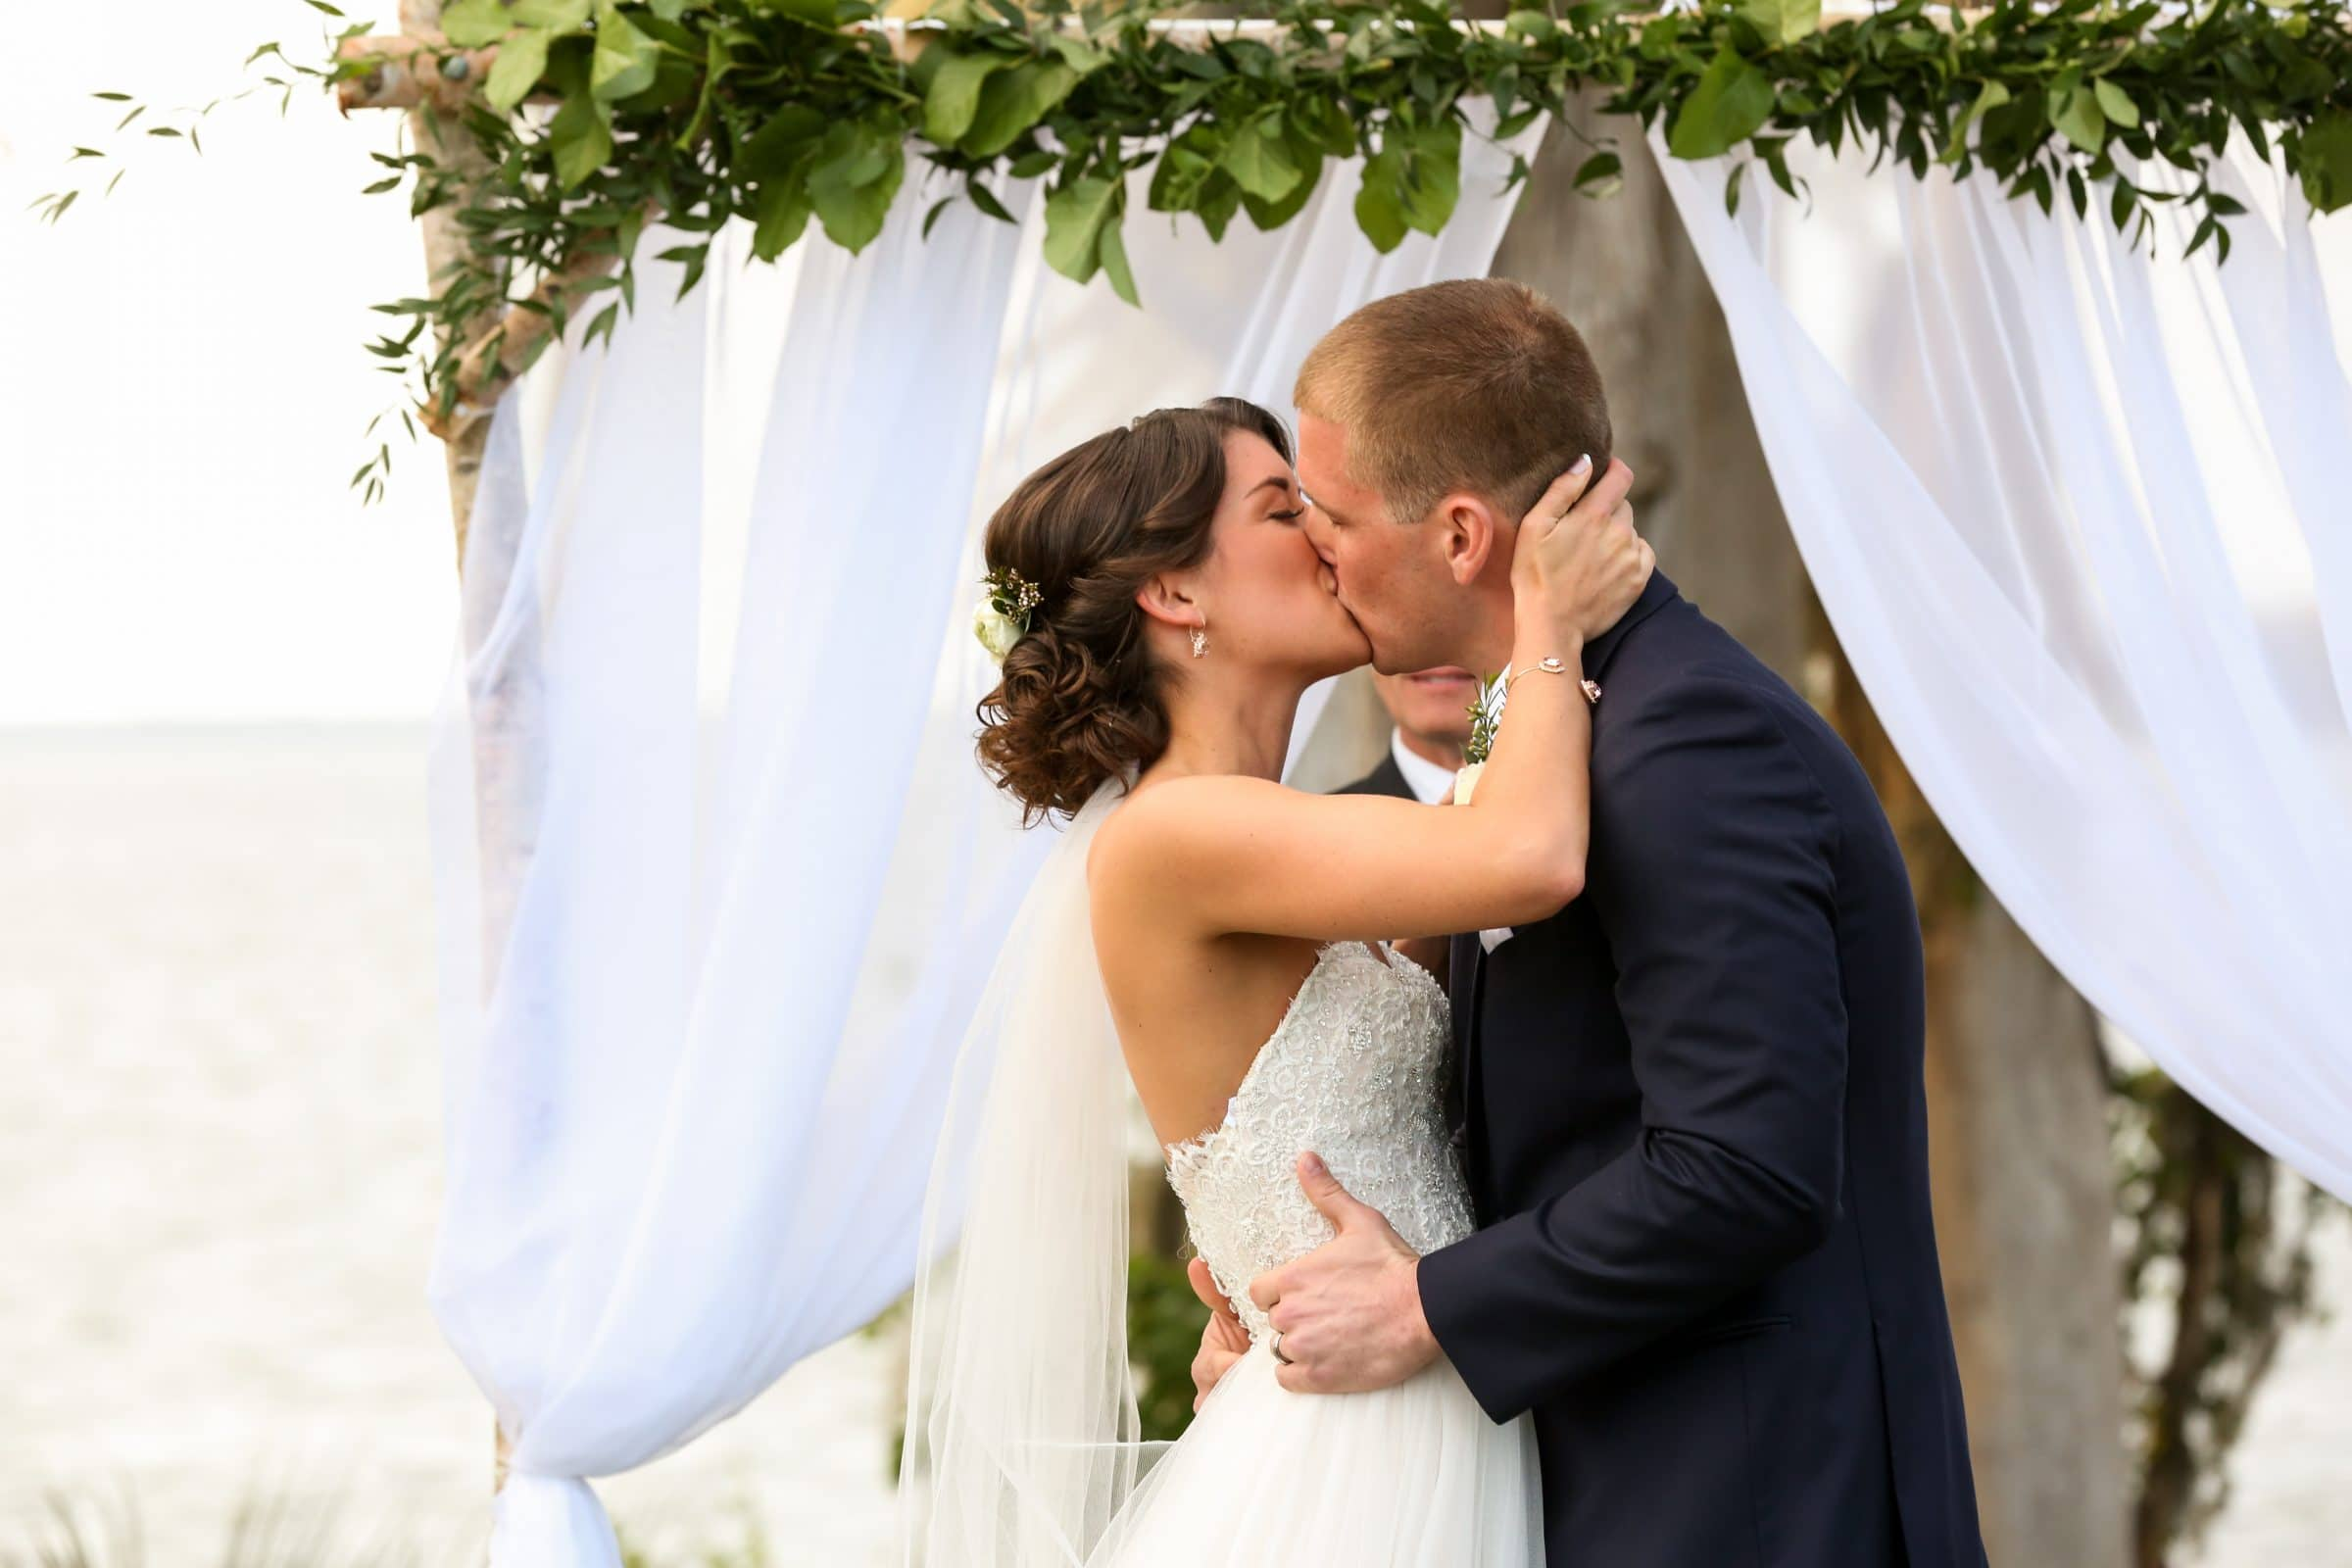 Bride and groom kiss in front of romantic fabric drapery